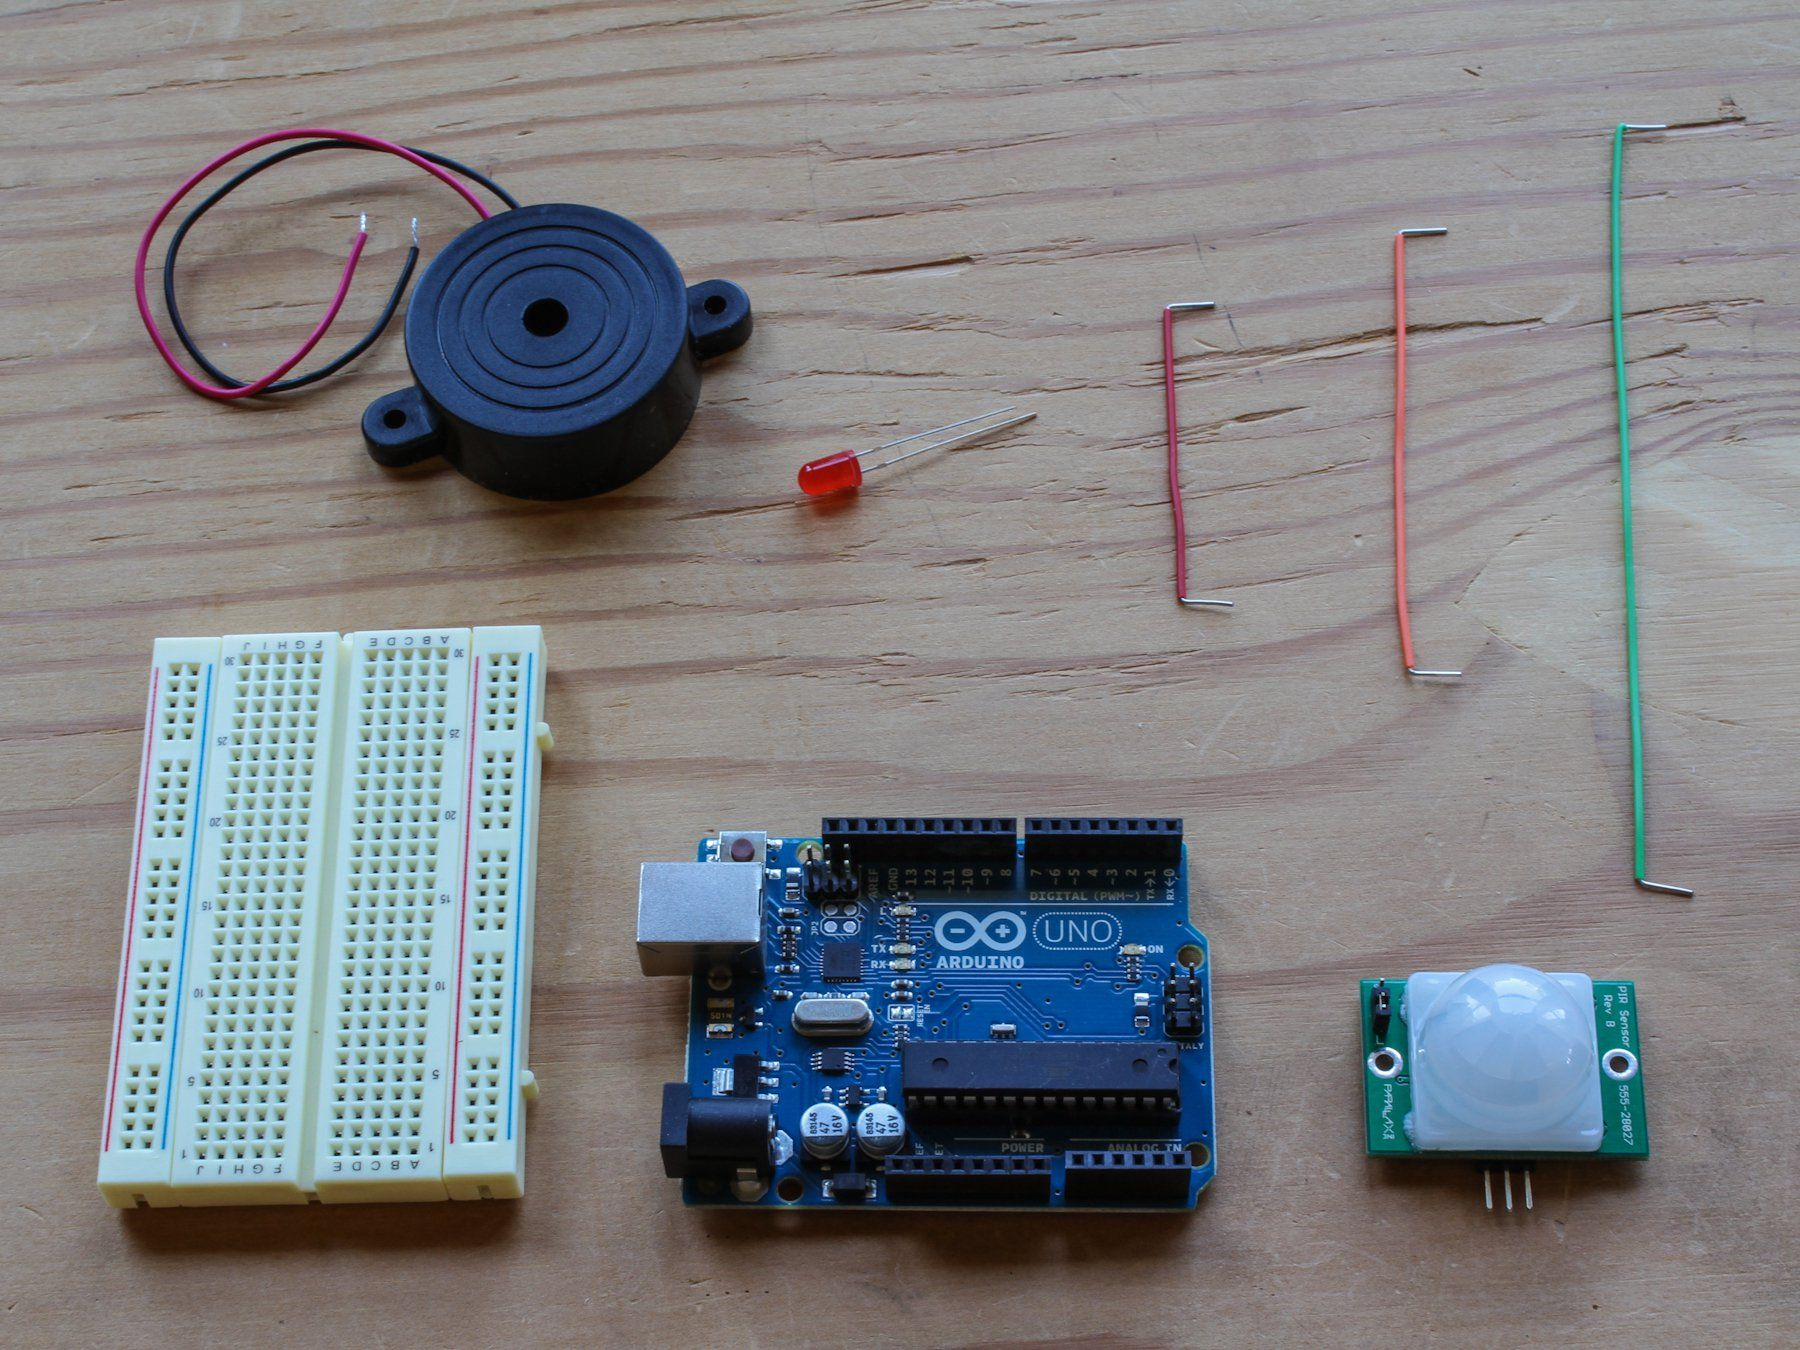 Pir Sensor Arduino Alarm And Passive Infrared Gsm Based Home Security System Using 8051